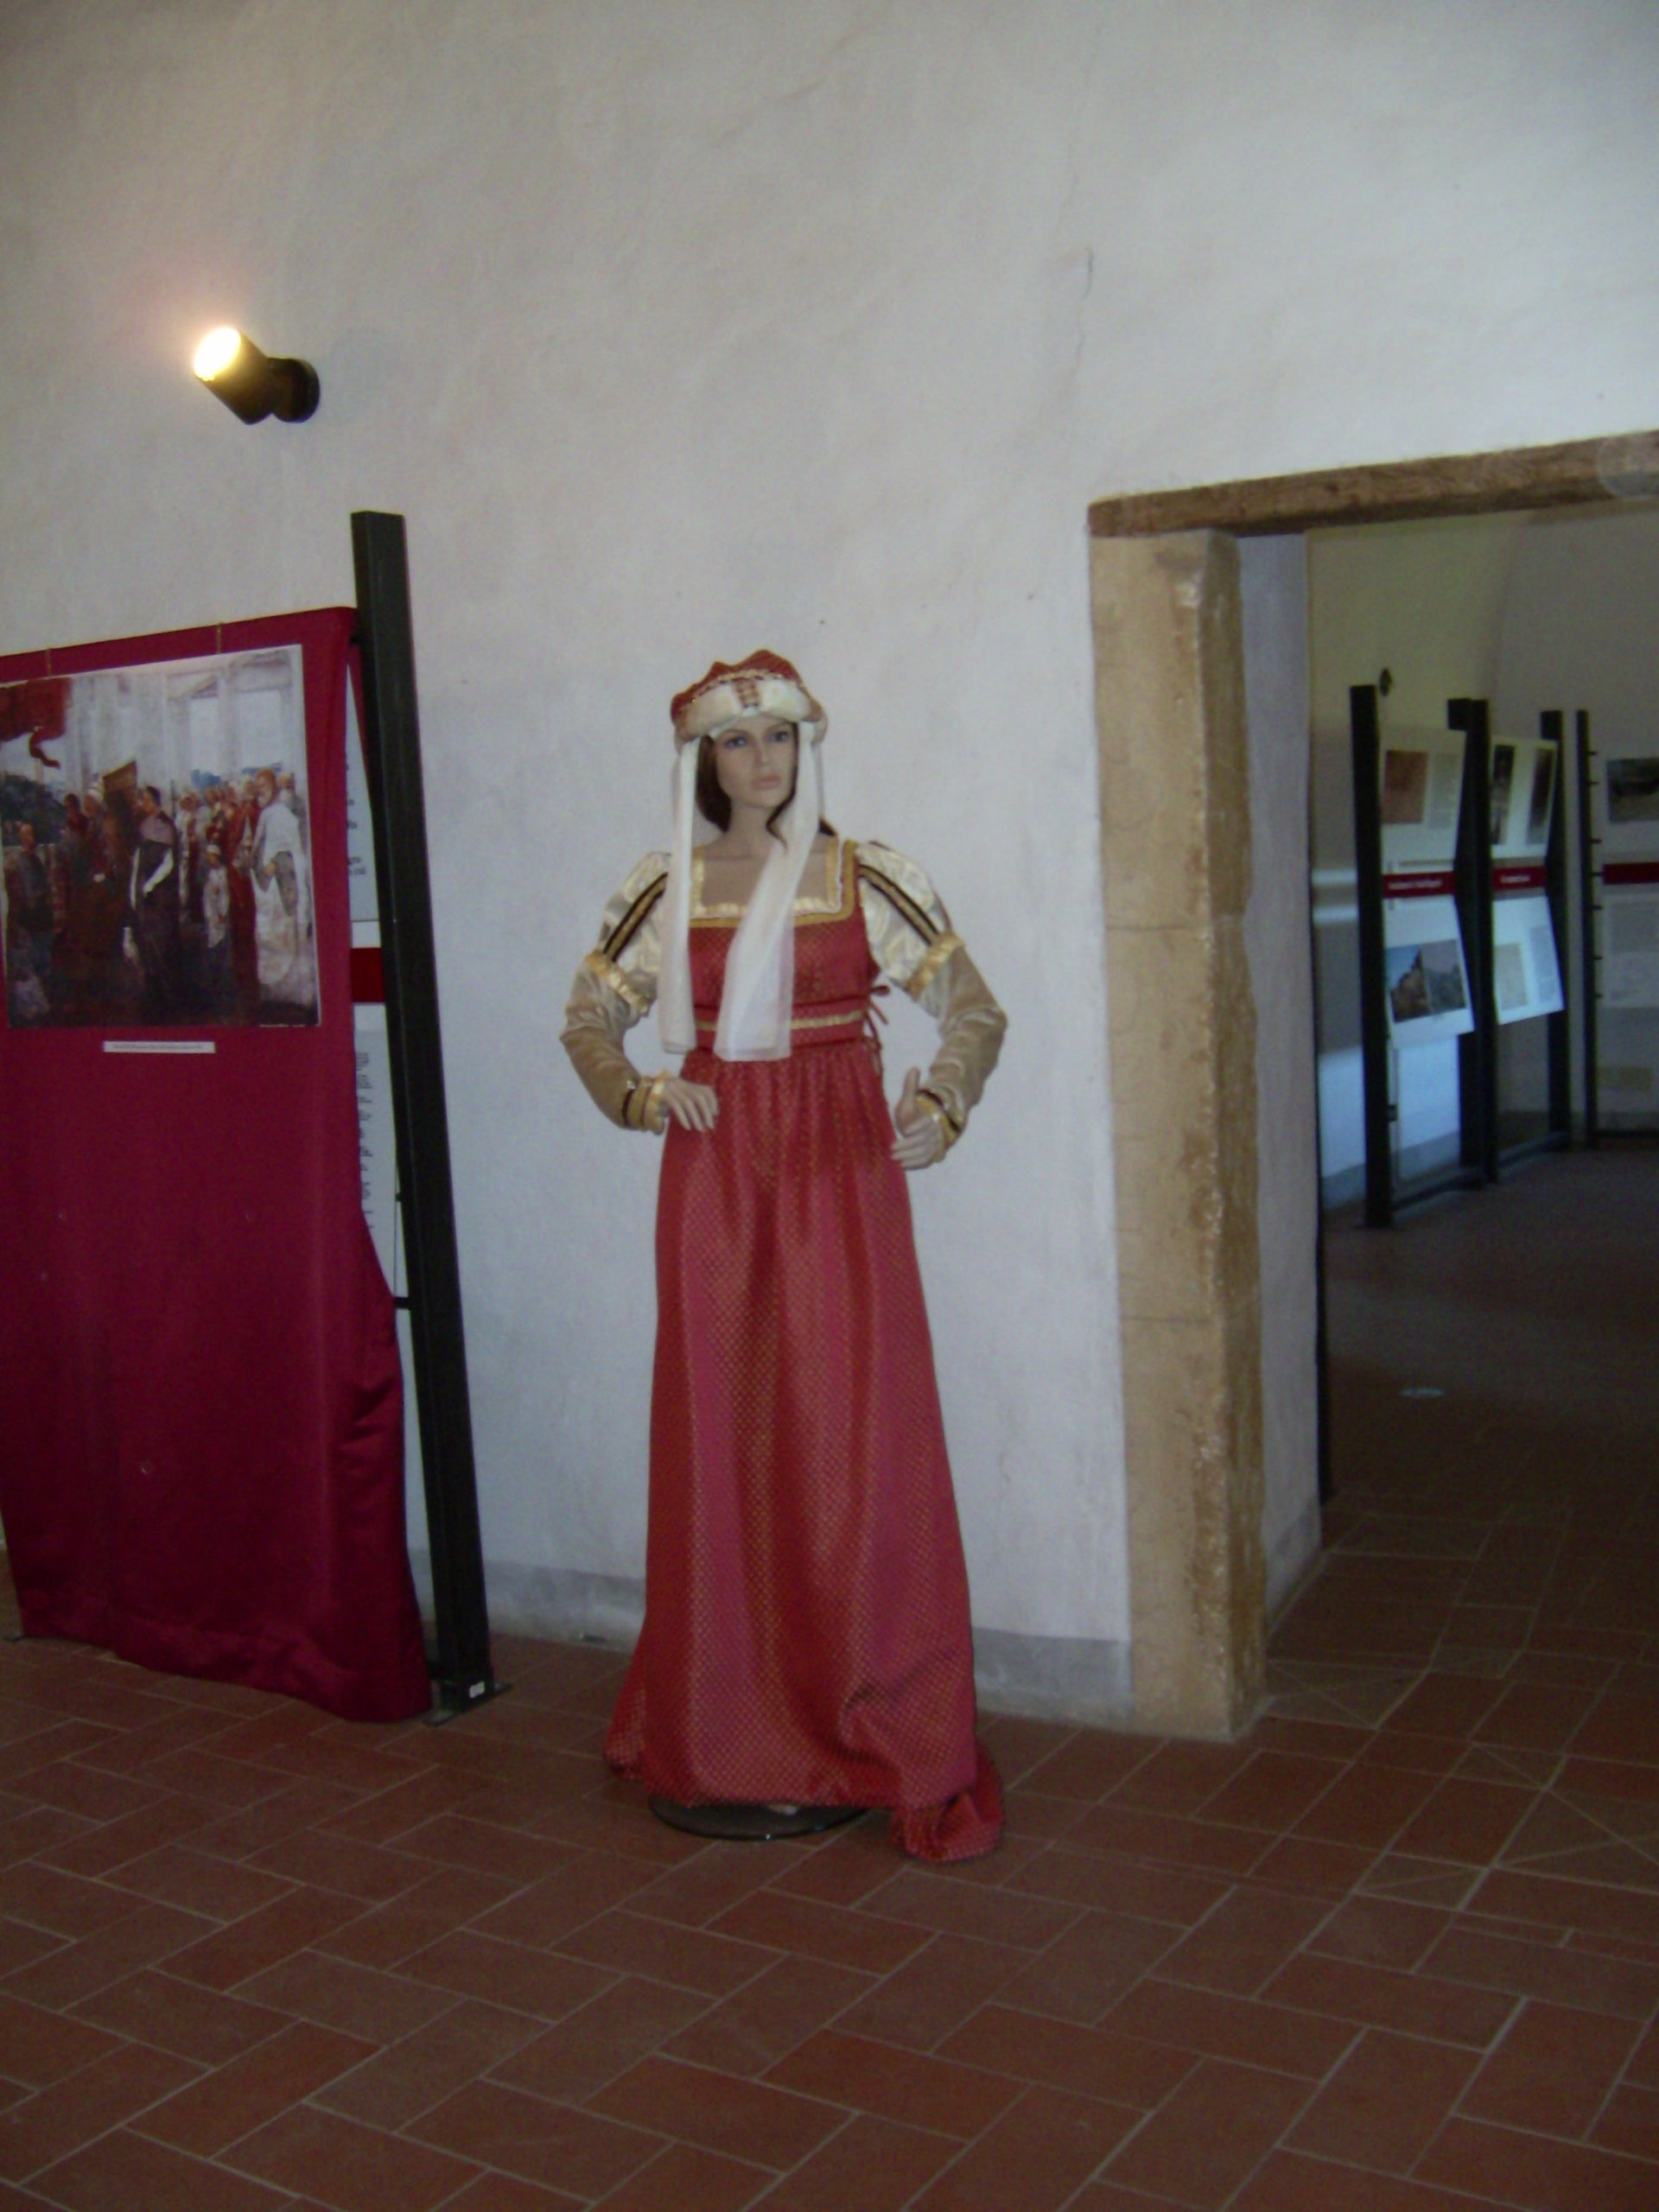 Museum of Middle Ages and Renaissance